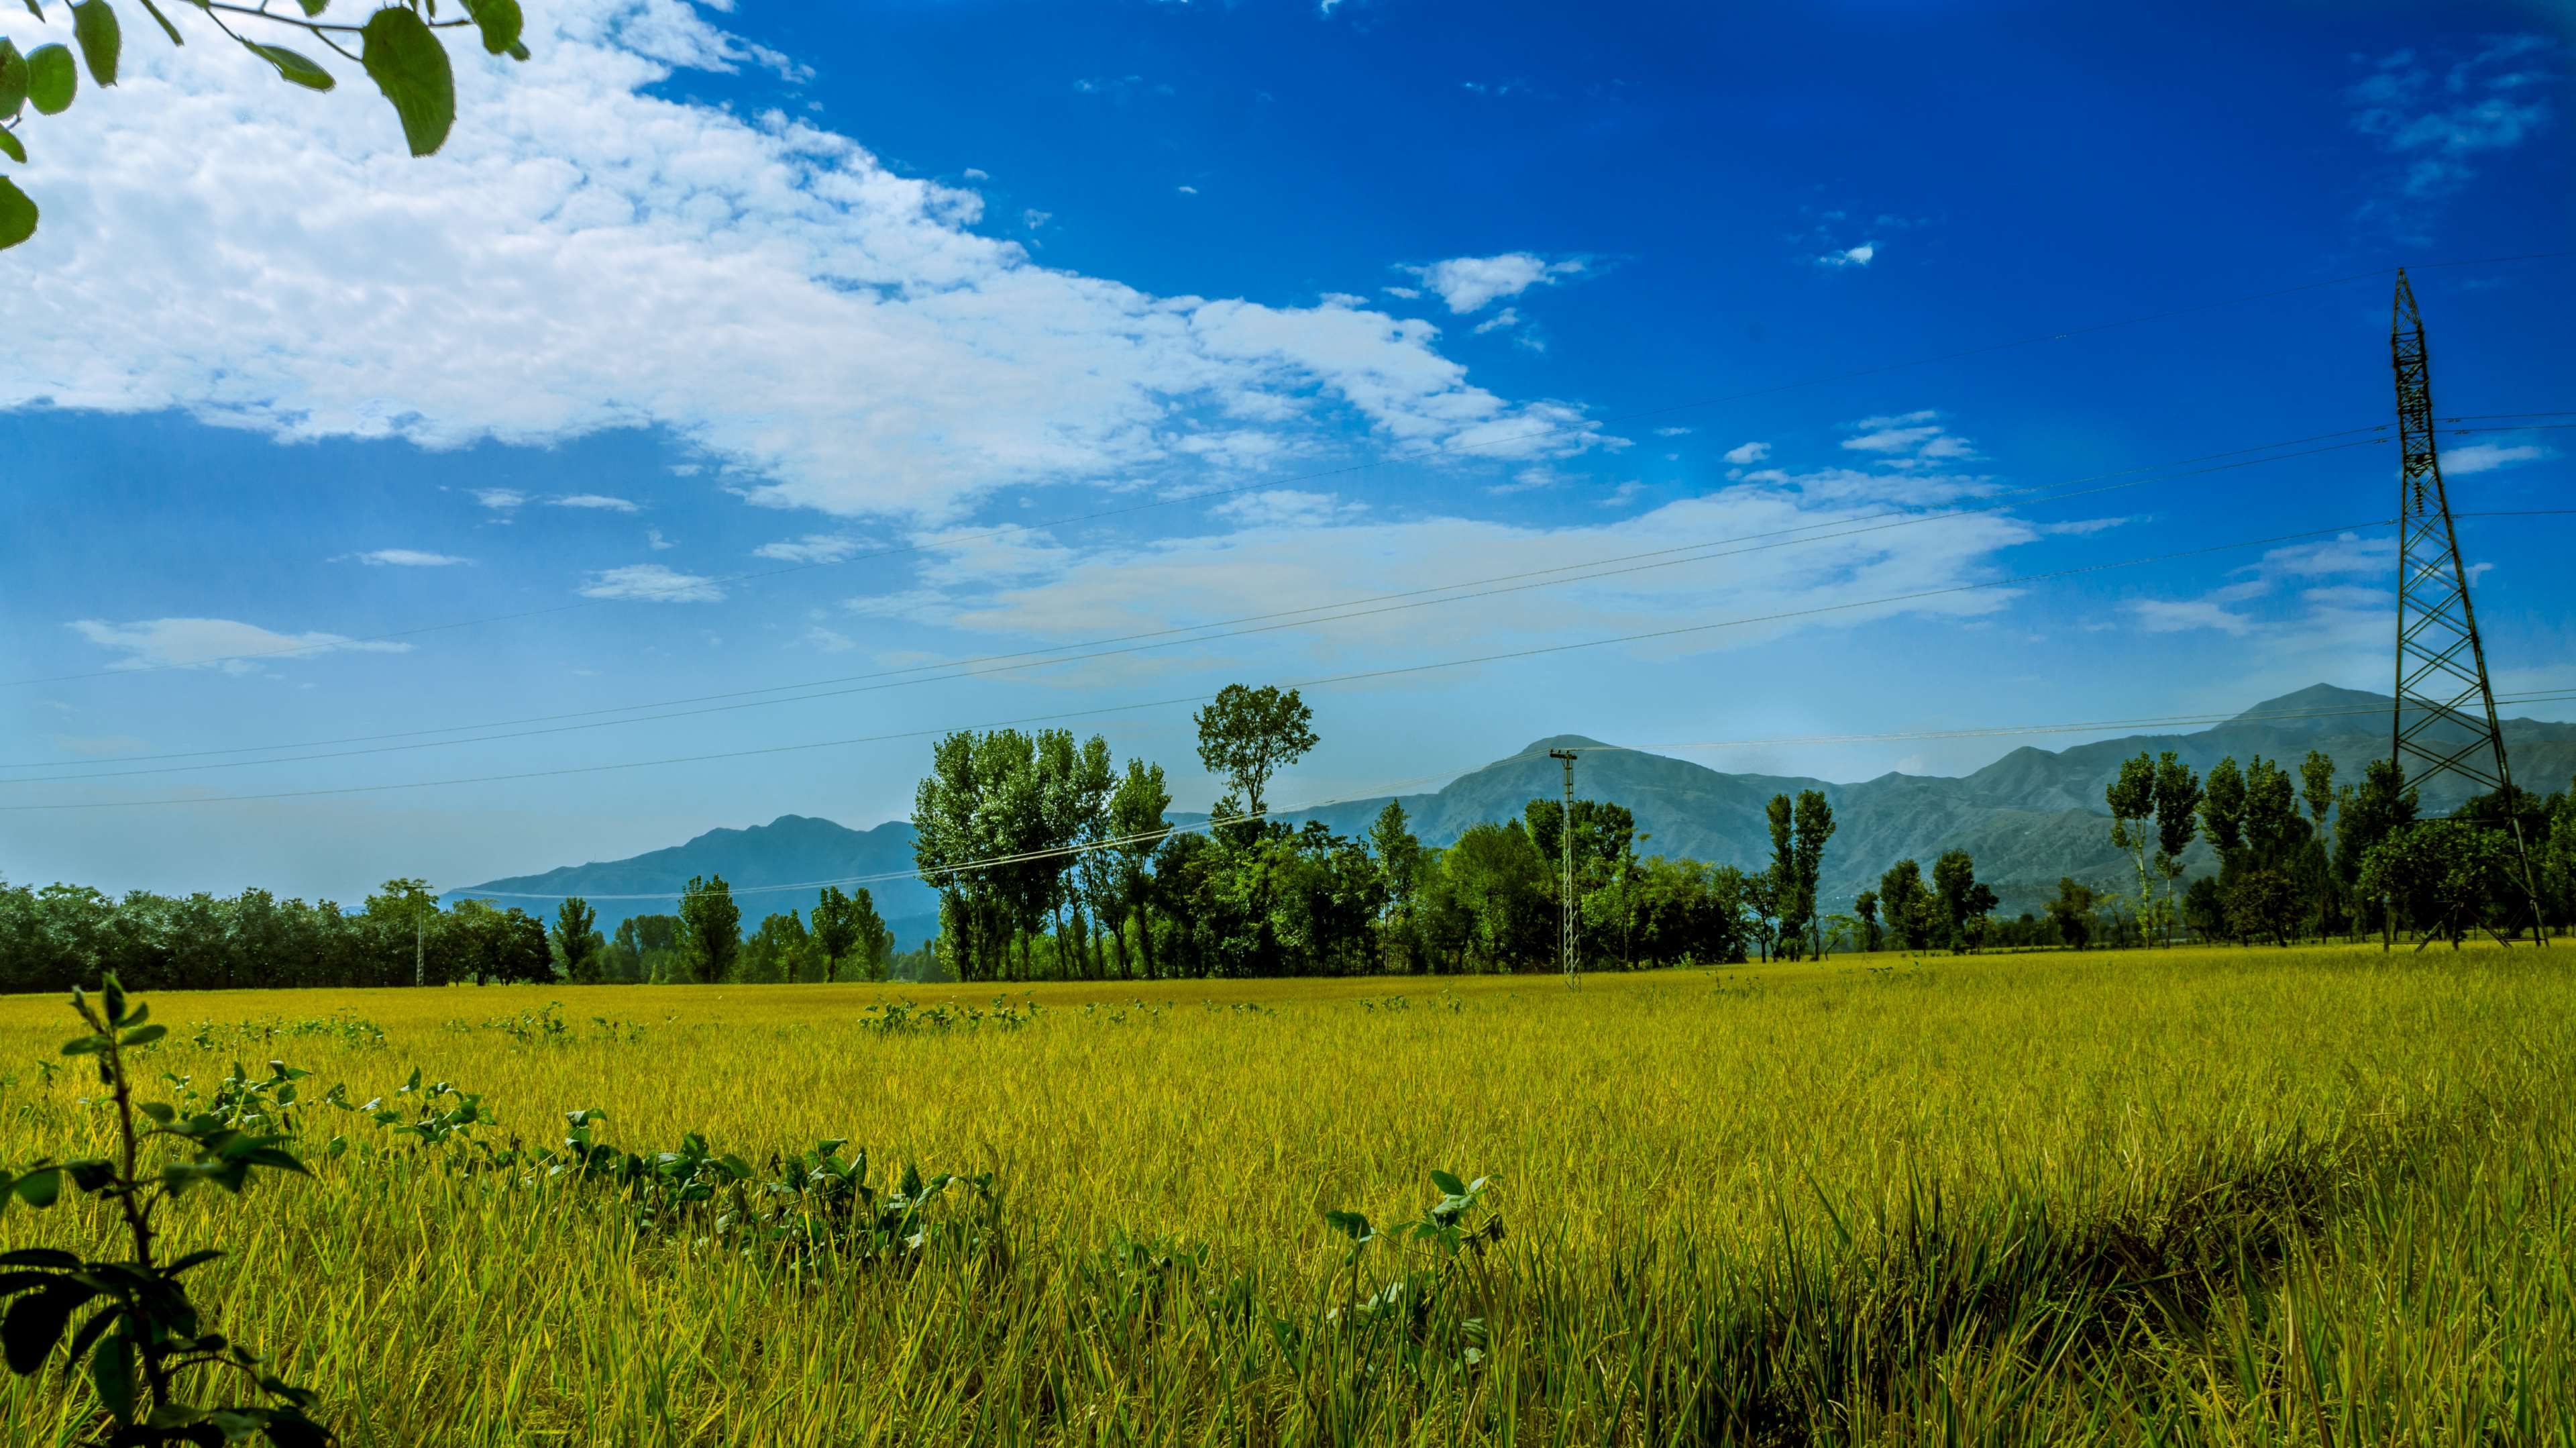 Agriculture Blue Sky Countryside Crop Cropland Farm Farmland Field Grass Landscape Nature Outdoors Pasture Rural Landscape Cropland Summer Trees